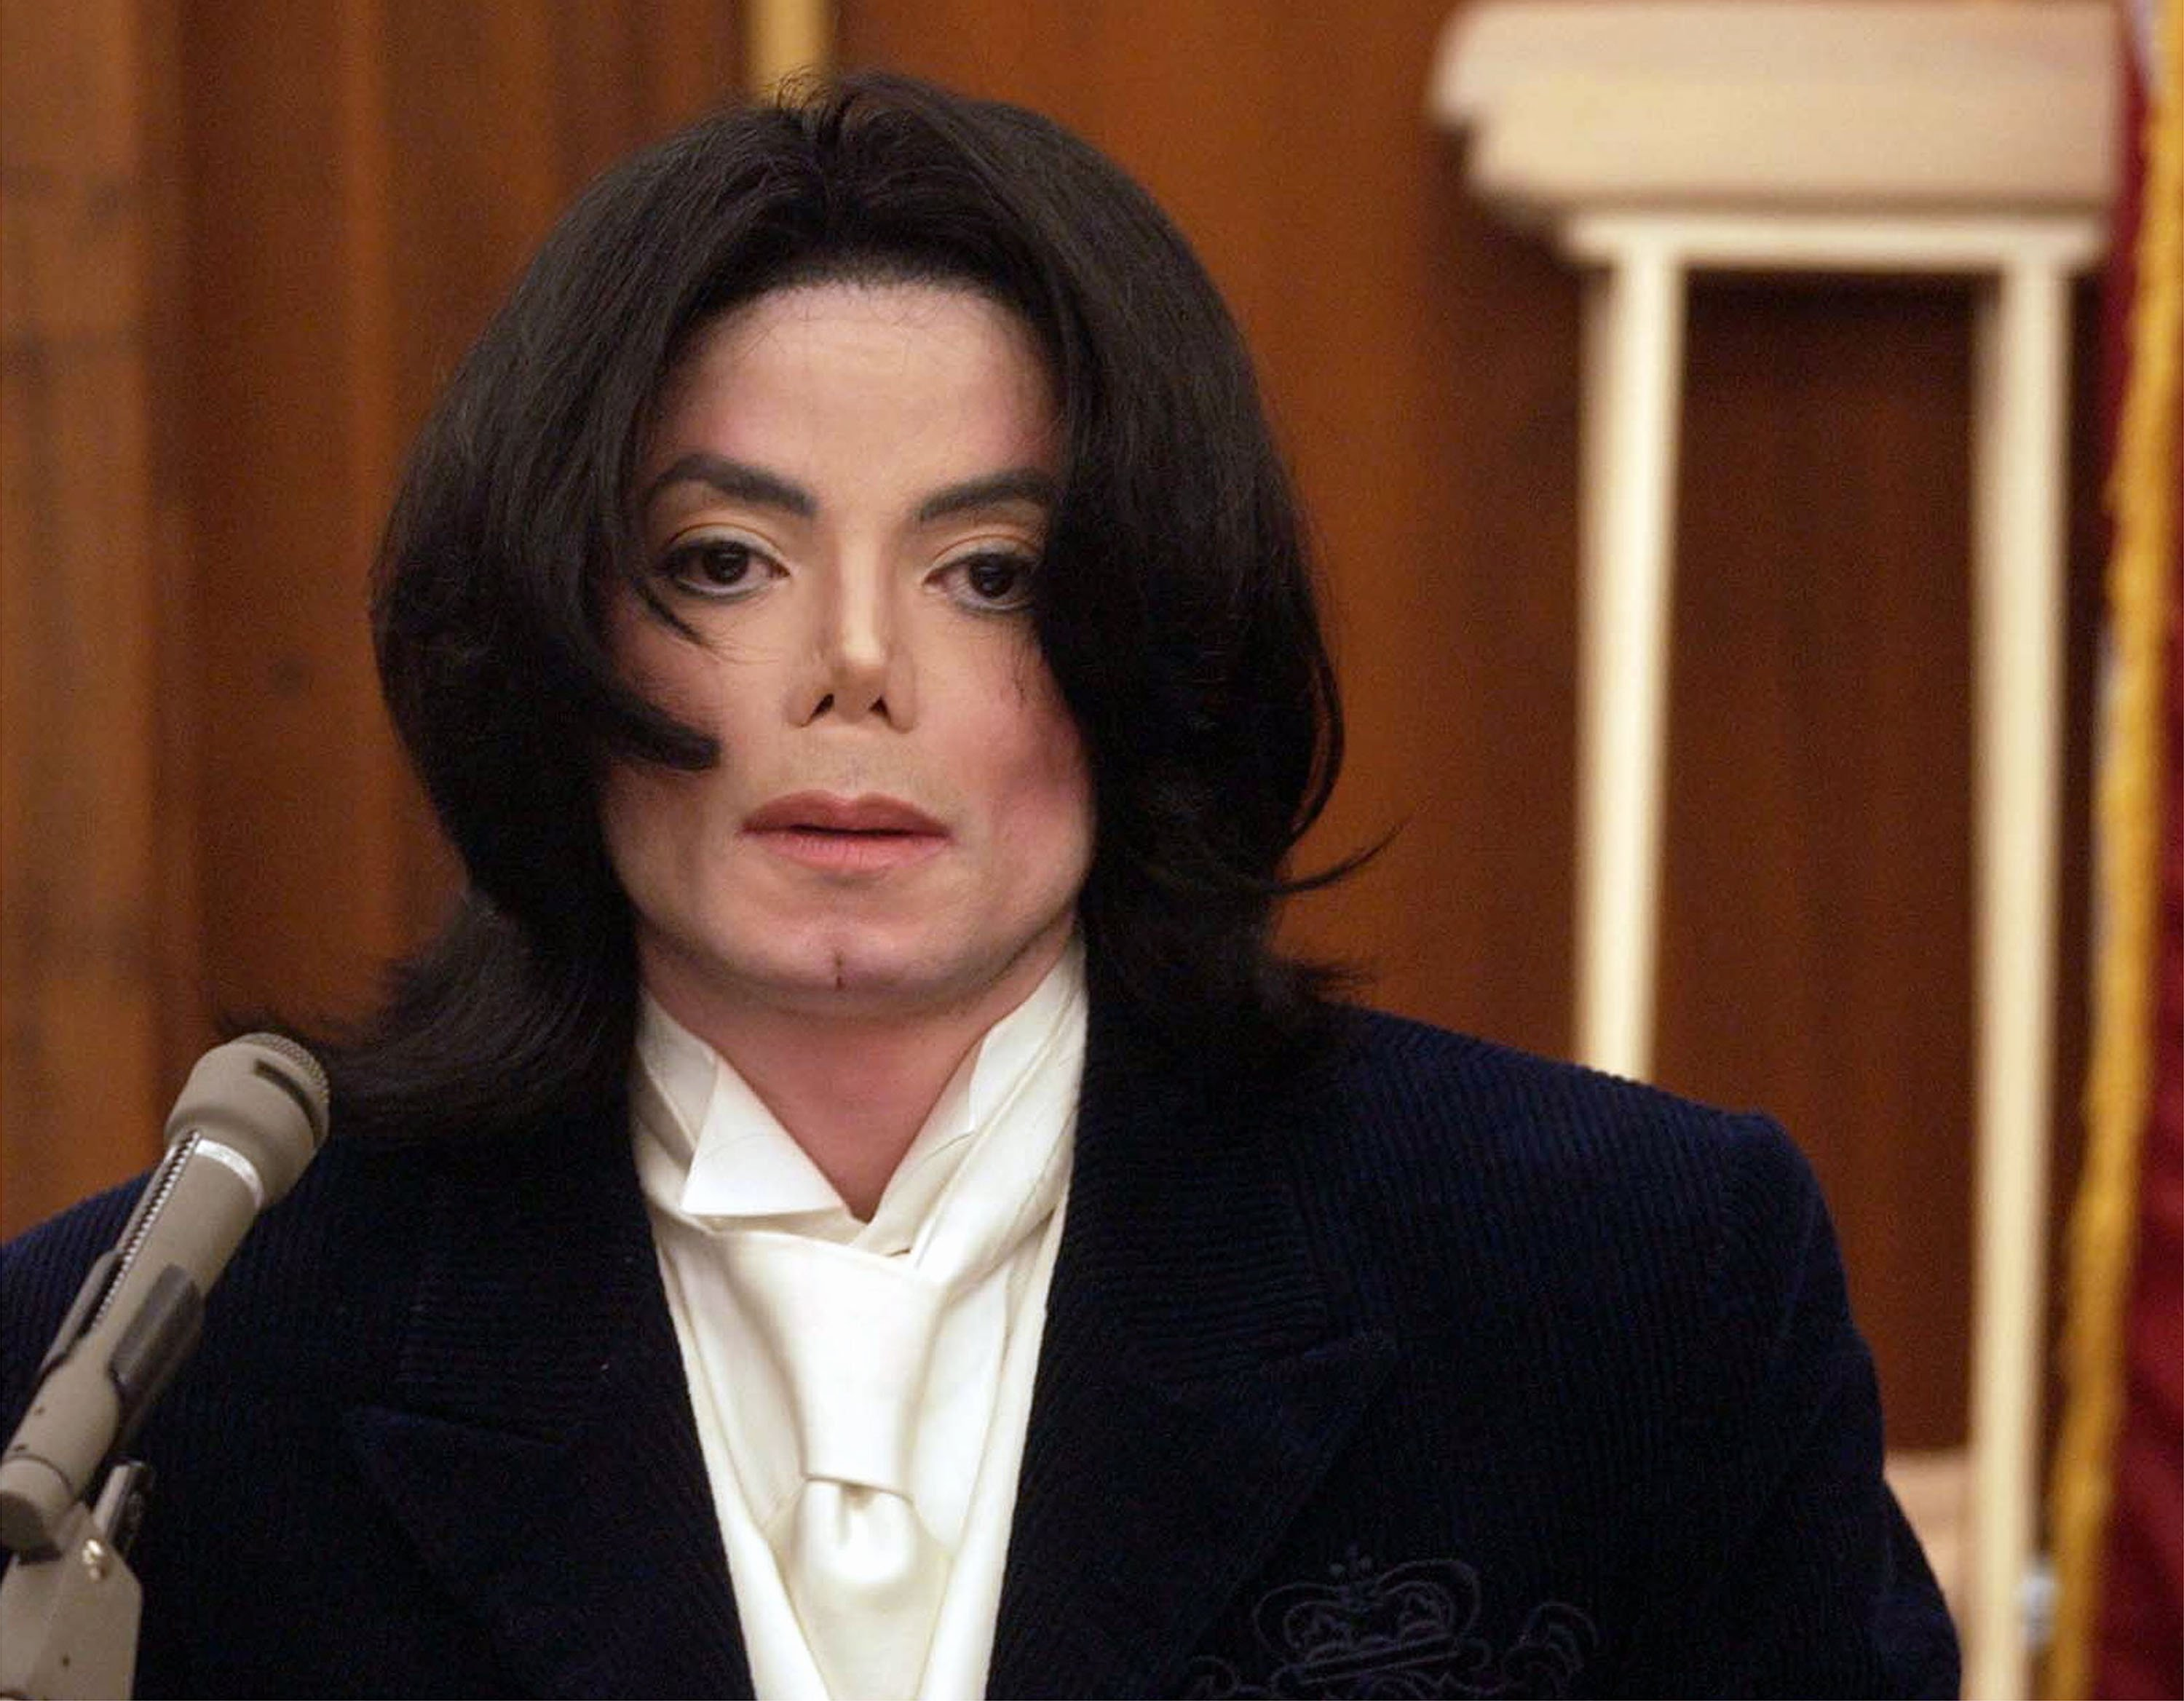 Michael Jackson testifies during his civil trial in Santa Maria Superior Court on December 3, 2002  | Photo: GettyImages